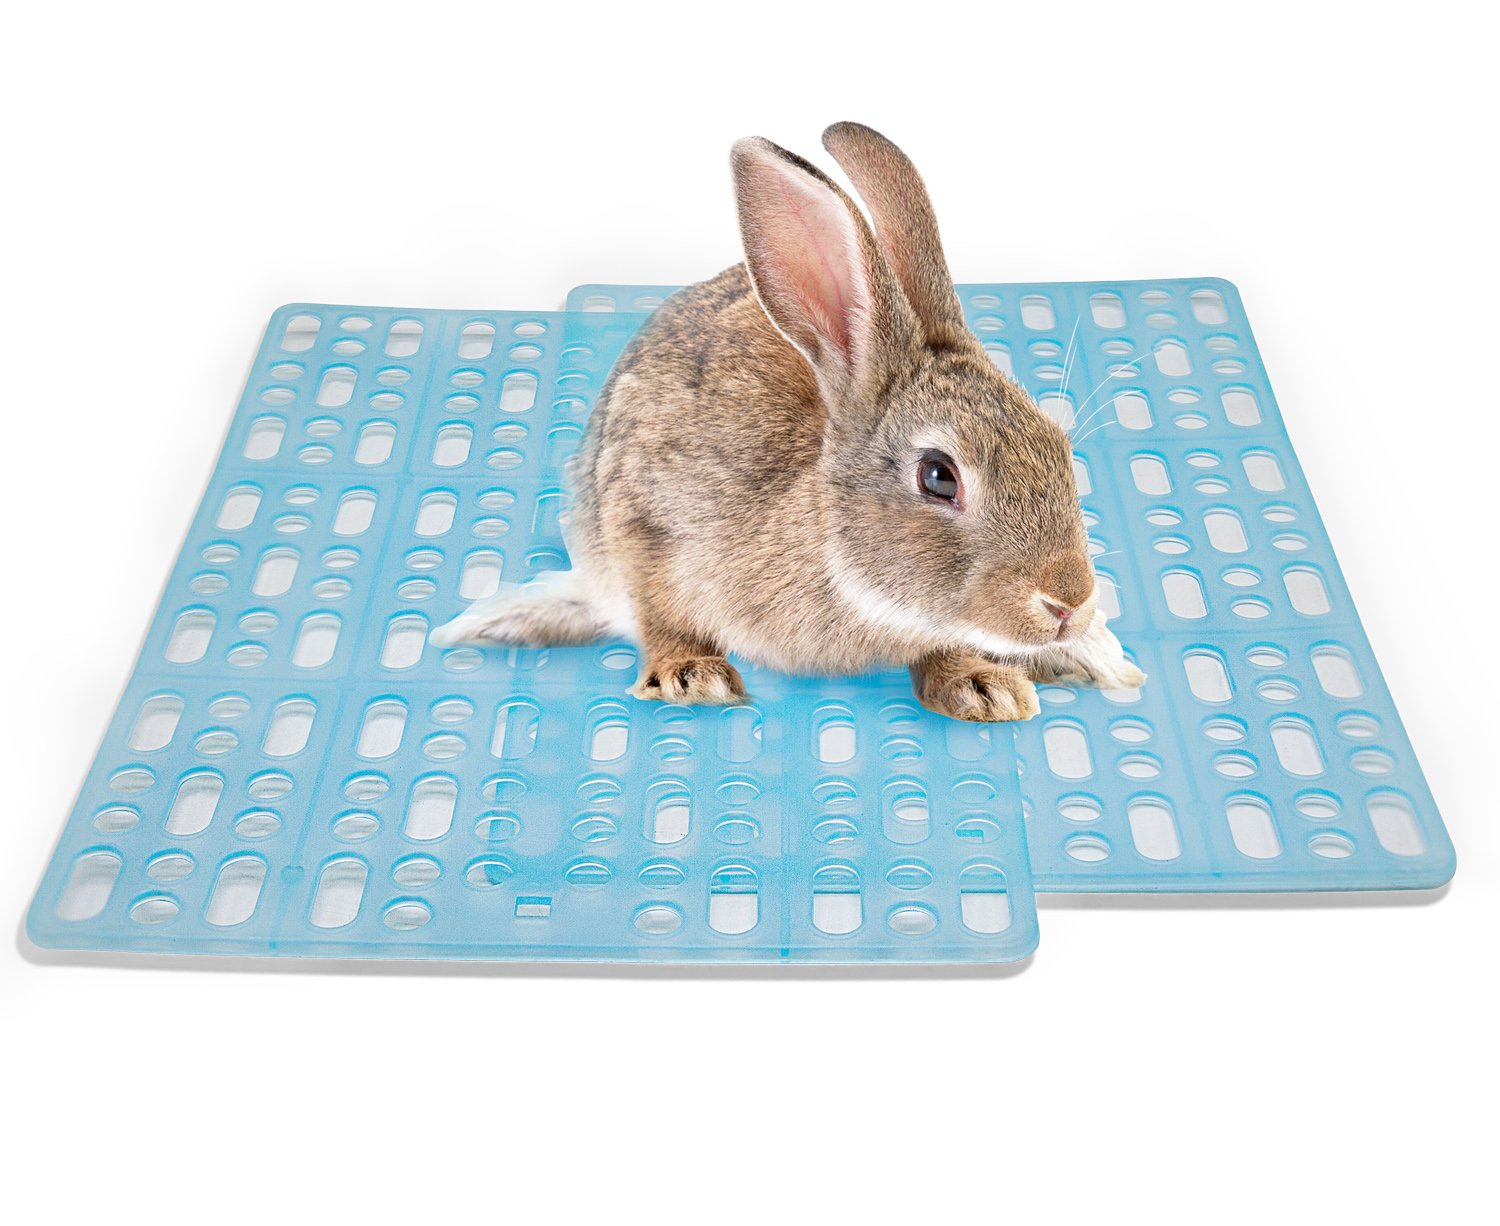 Niteangel 2 Pieces Rabbit Playpen Feet Mats for Cage, Comes with 4 Fixed Tabs